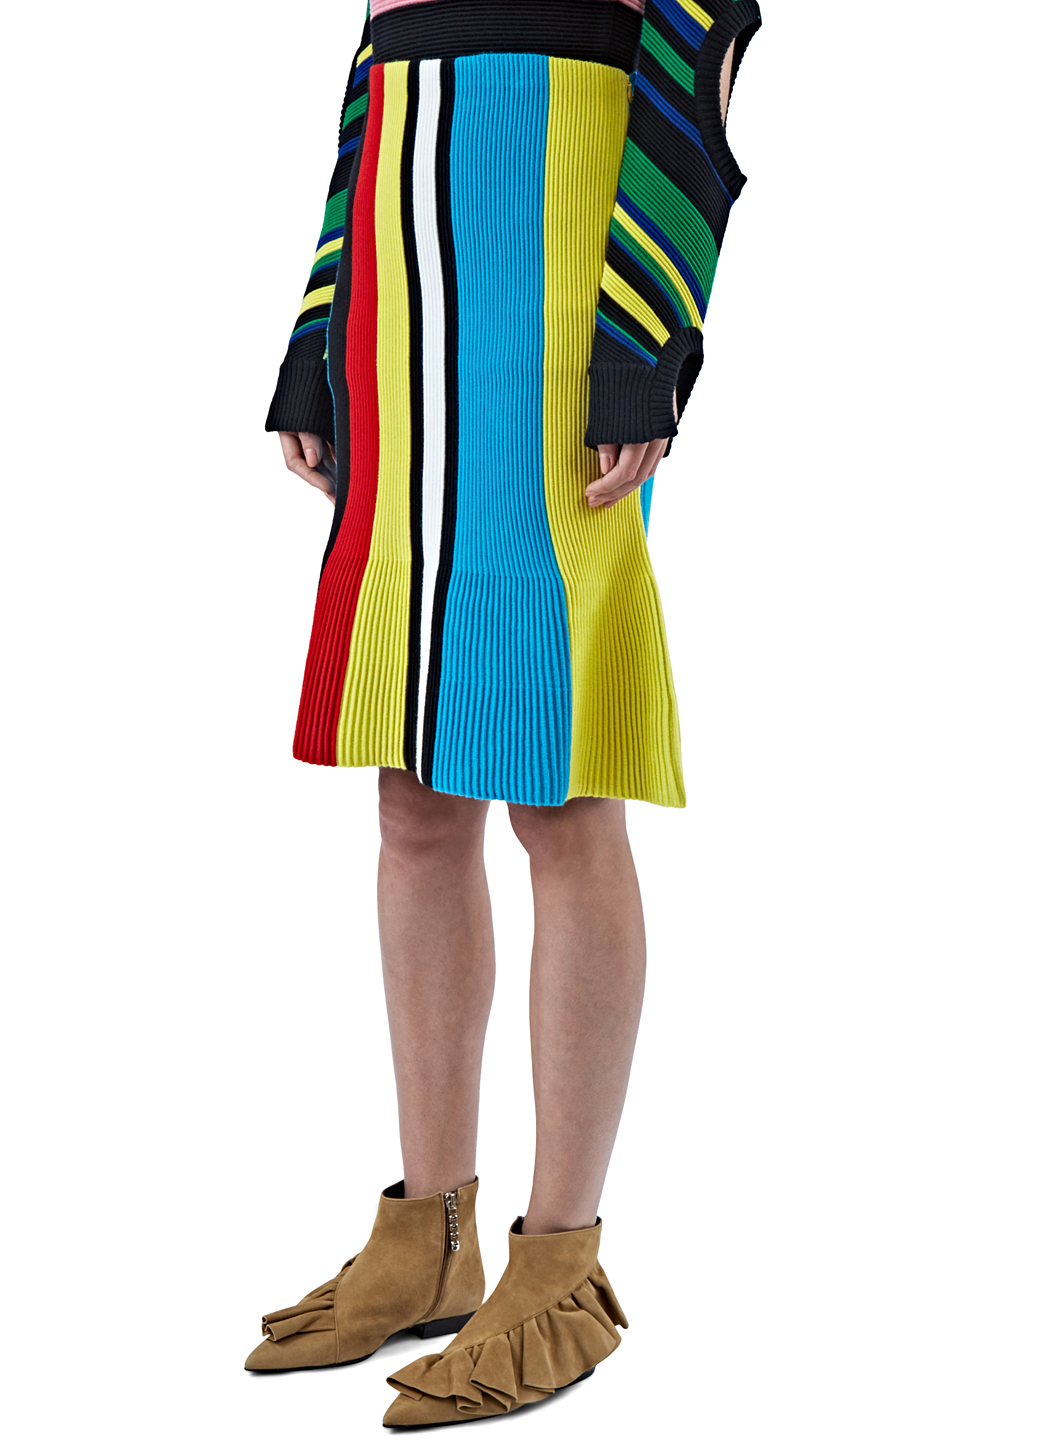 ff11a7903 JW Anderson Women's Ottoman Striped Knit Skirt In Blue, Yellow And ...